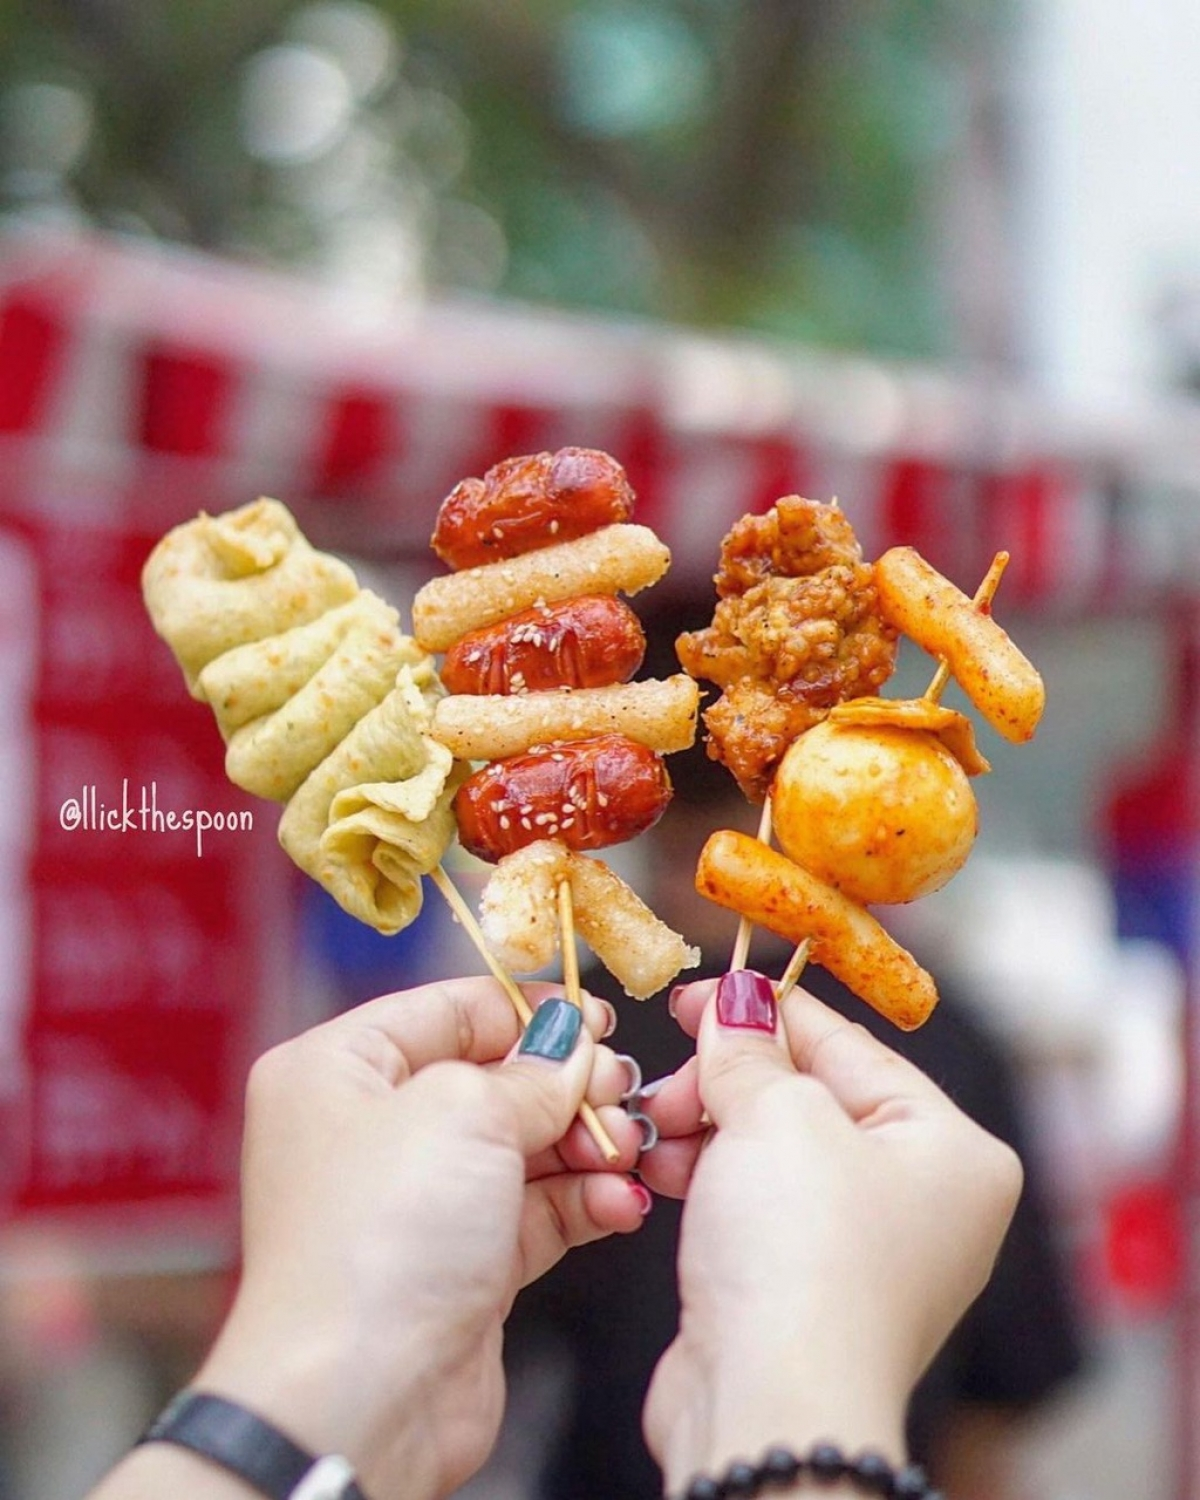 The menu includes delicacies such as tokbokki, roll vermicelli, fish balls, fried chicken balls, and sausages, with prices at around VND25,000, equivalent to US$1.08. (Photo: llickthespoon)